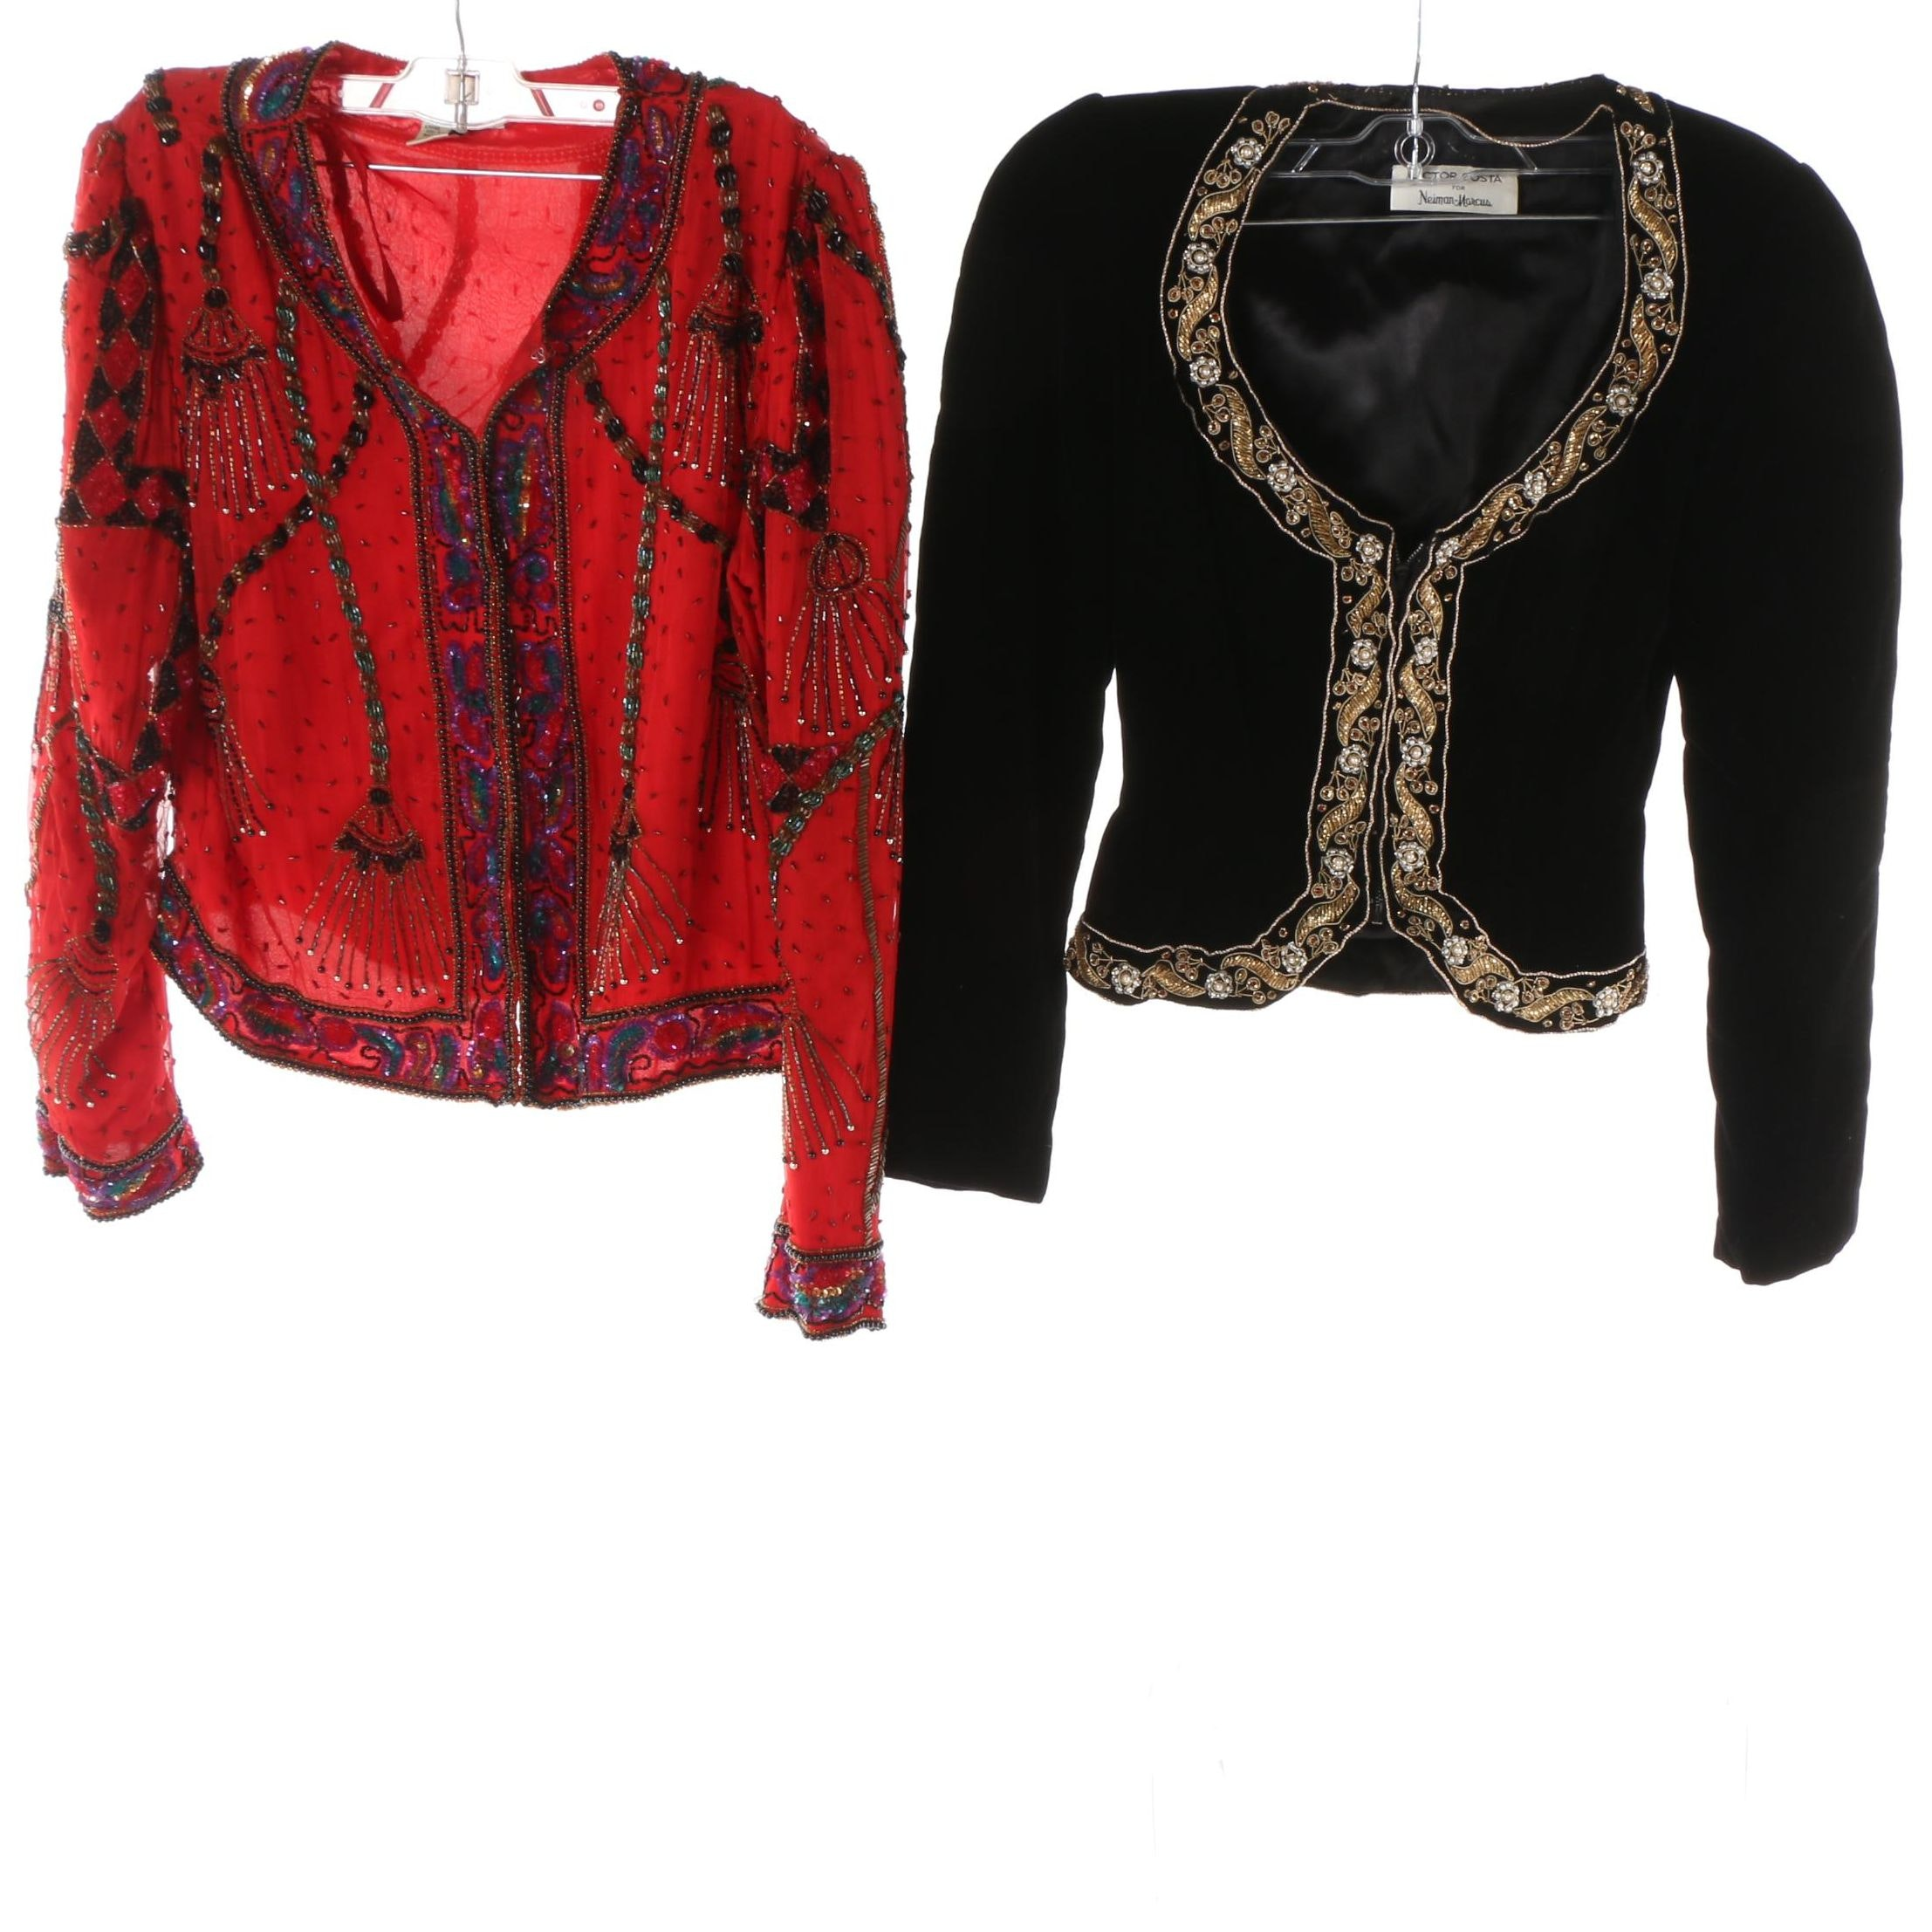 Women's Victor Costa and Laurence Kazar New York Embellished Jackets